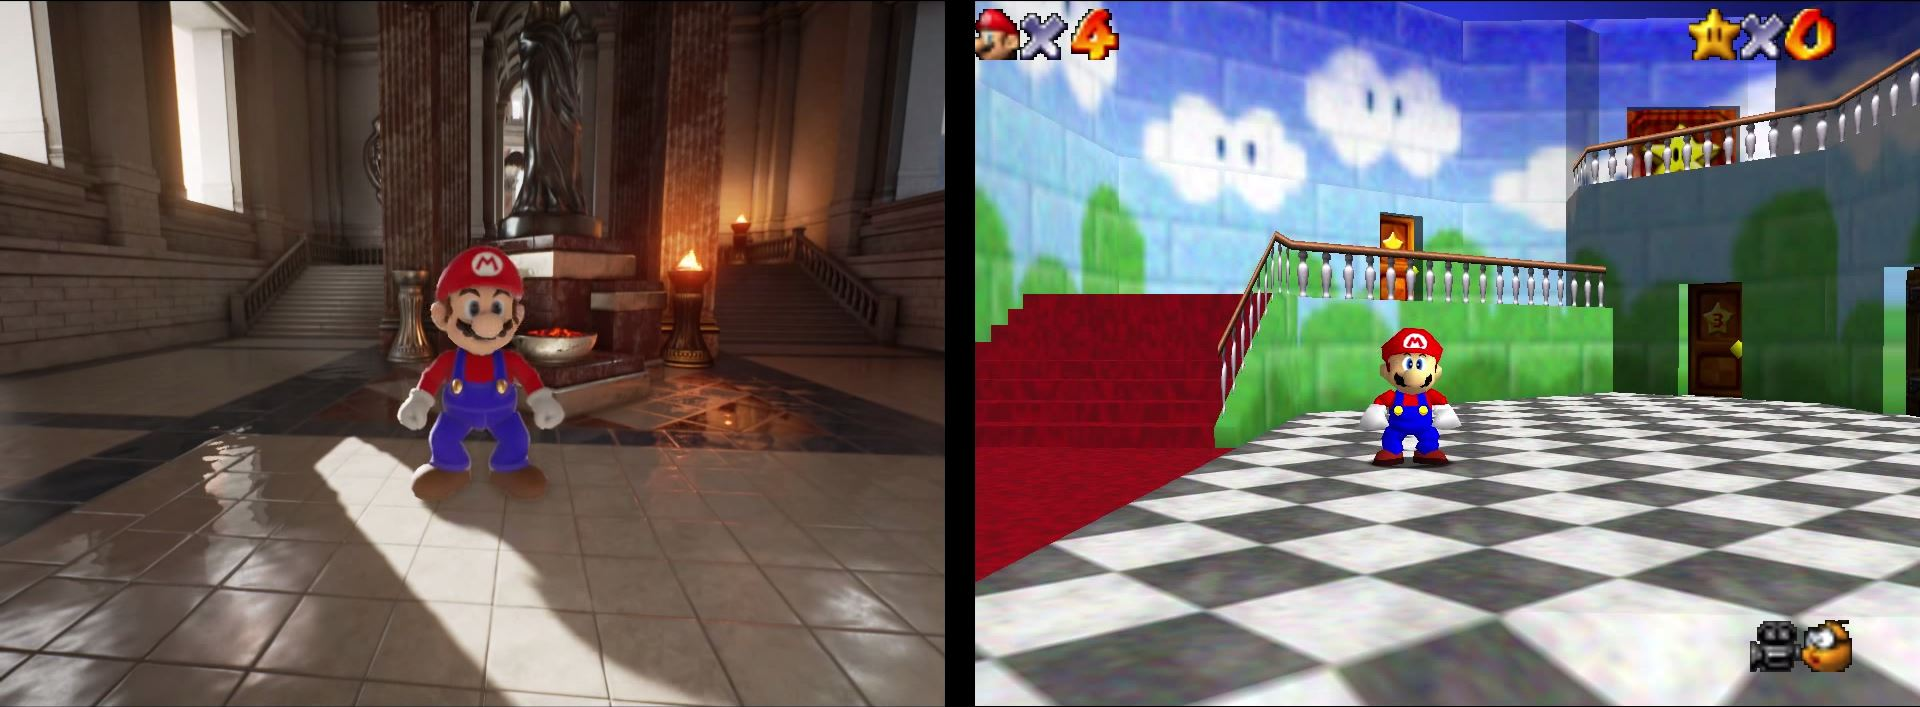 How Mario looks like in an Unreal Engine 4 game - El Mundo Tech